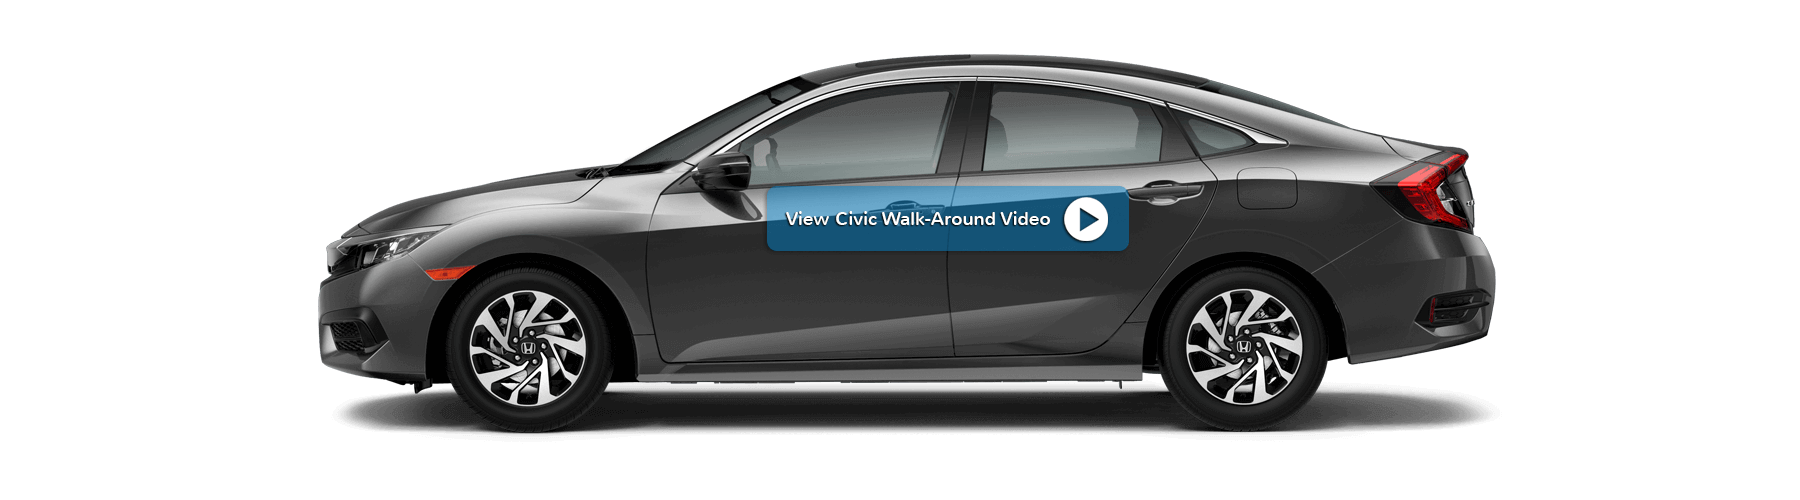 2018 Honda Civic Sedan Side Profile